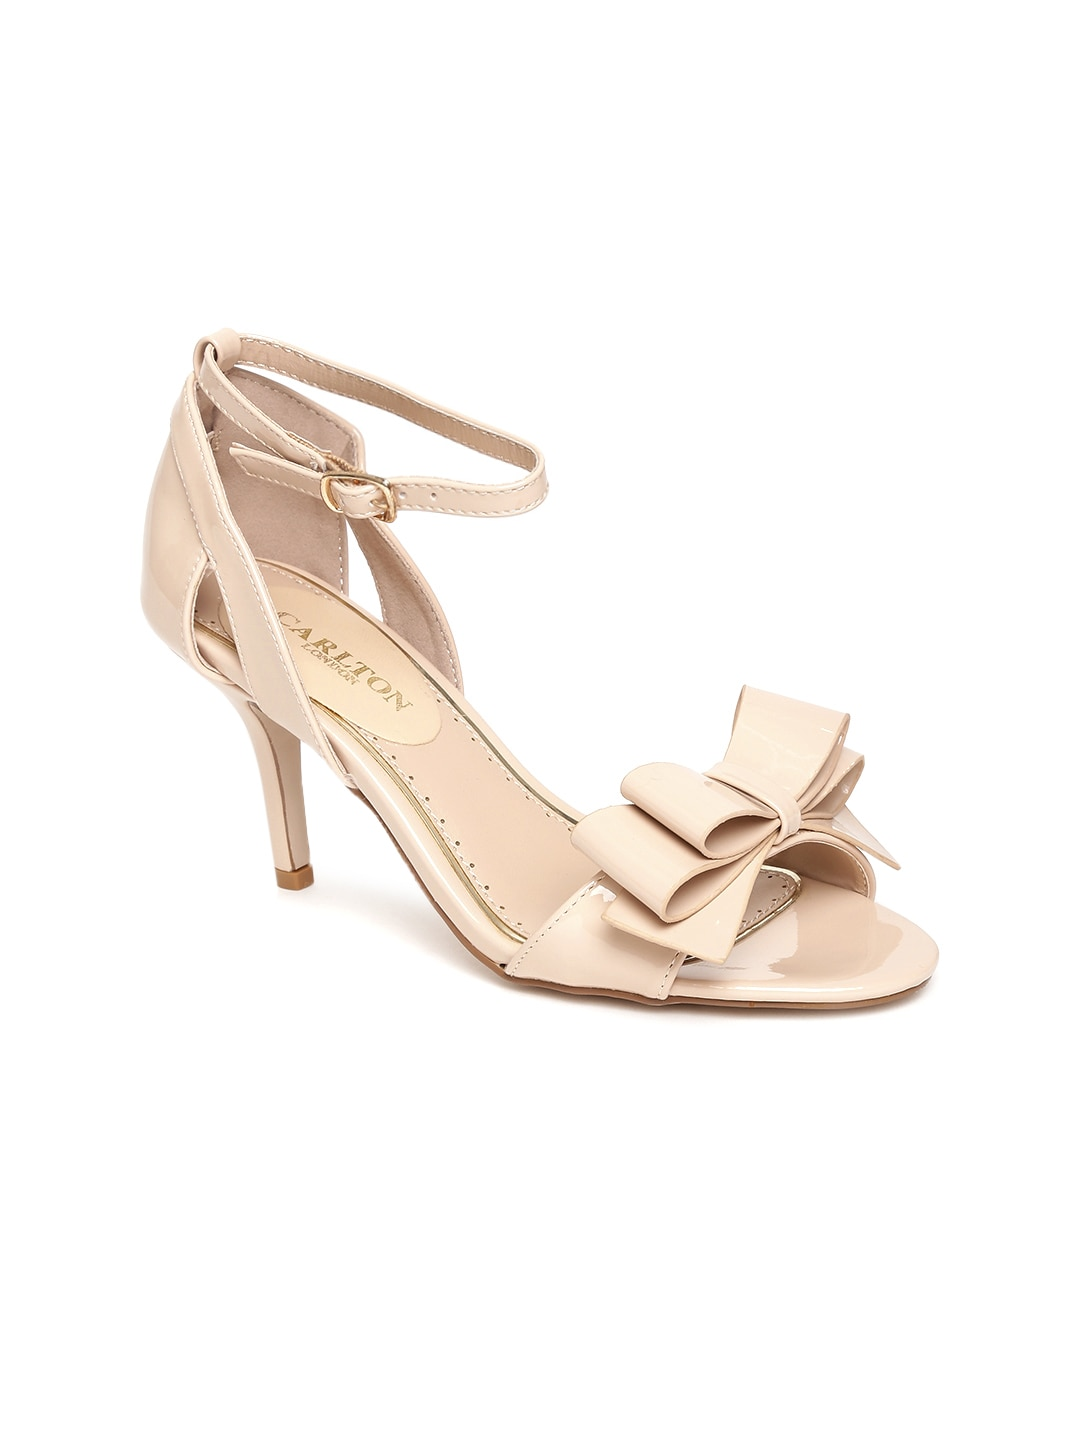 Carlton London Women Nude-Coloured Solid Sandals image